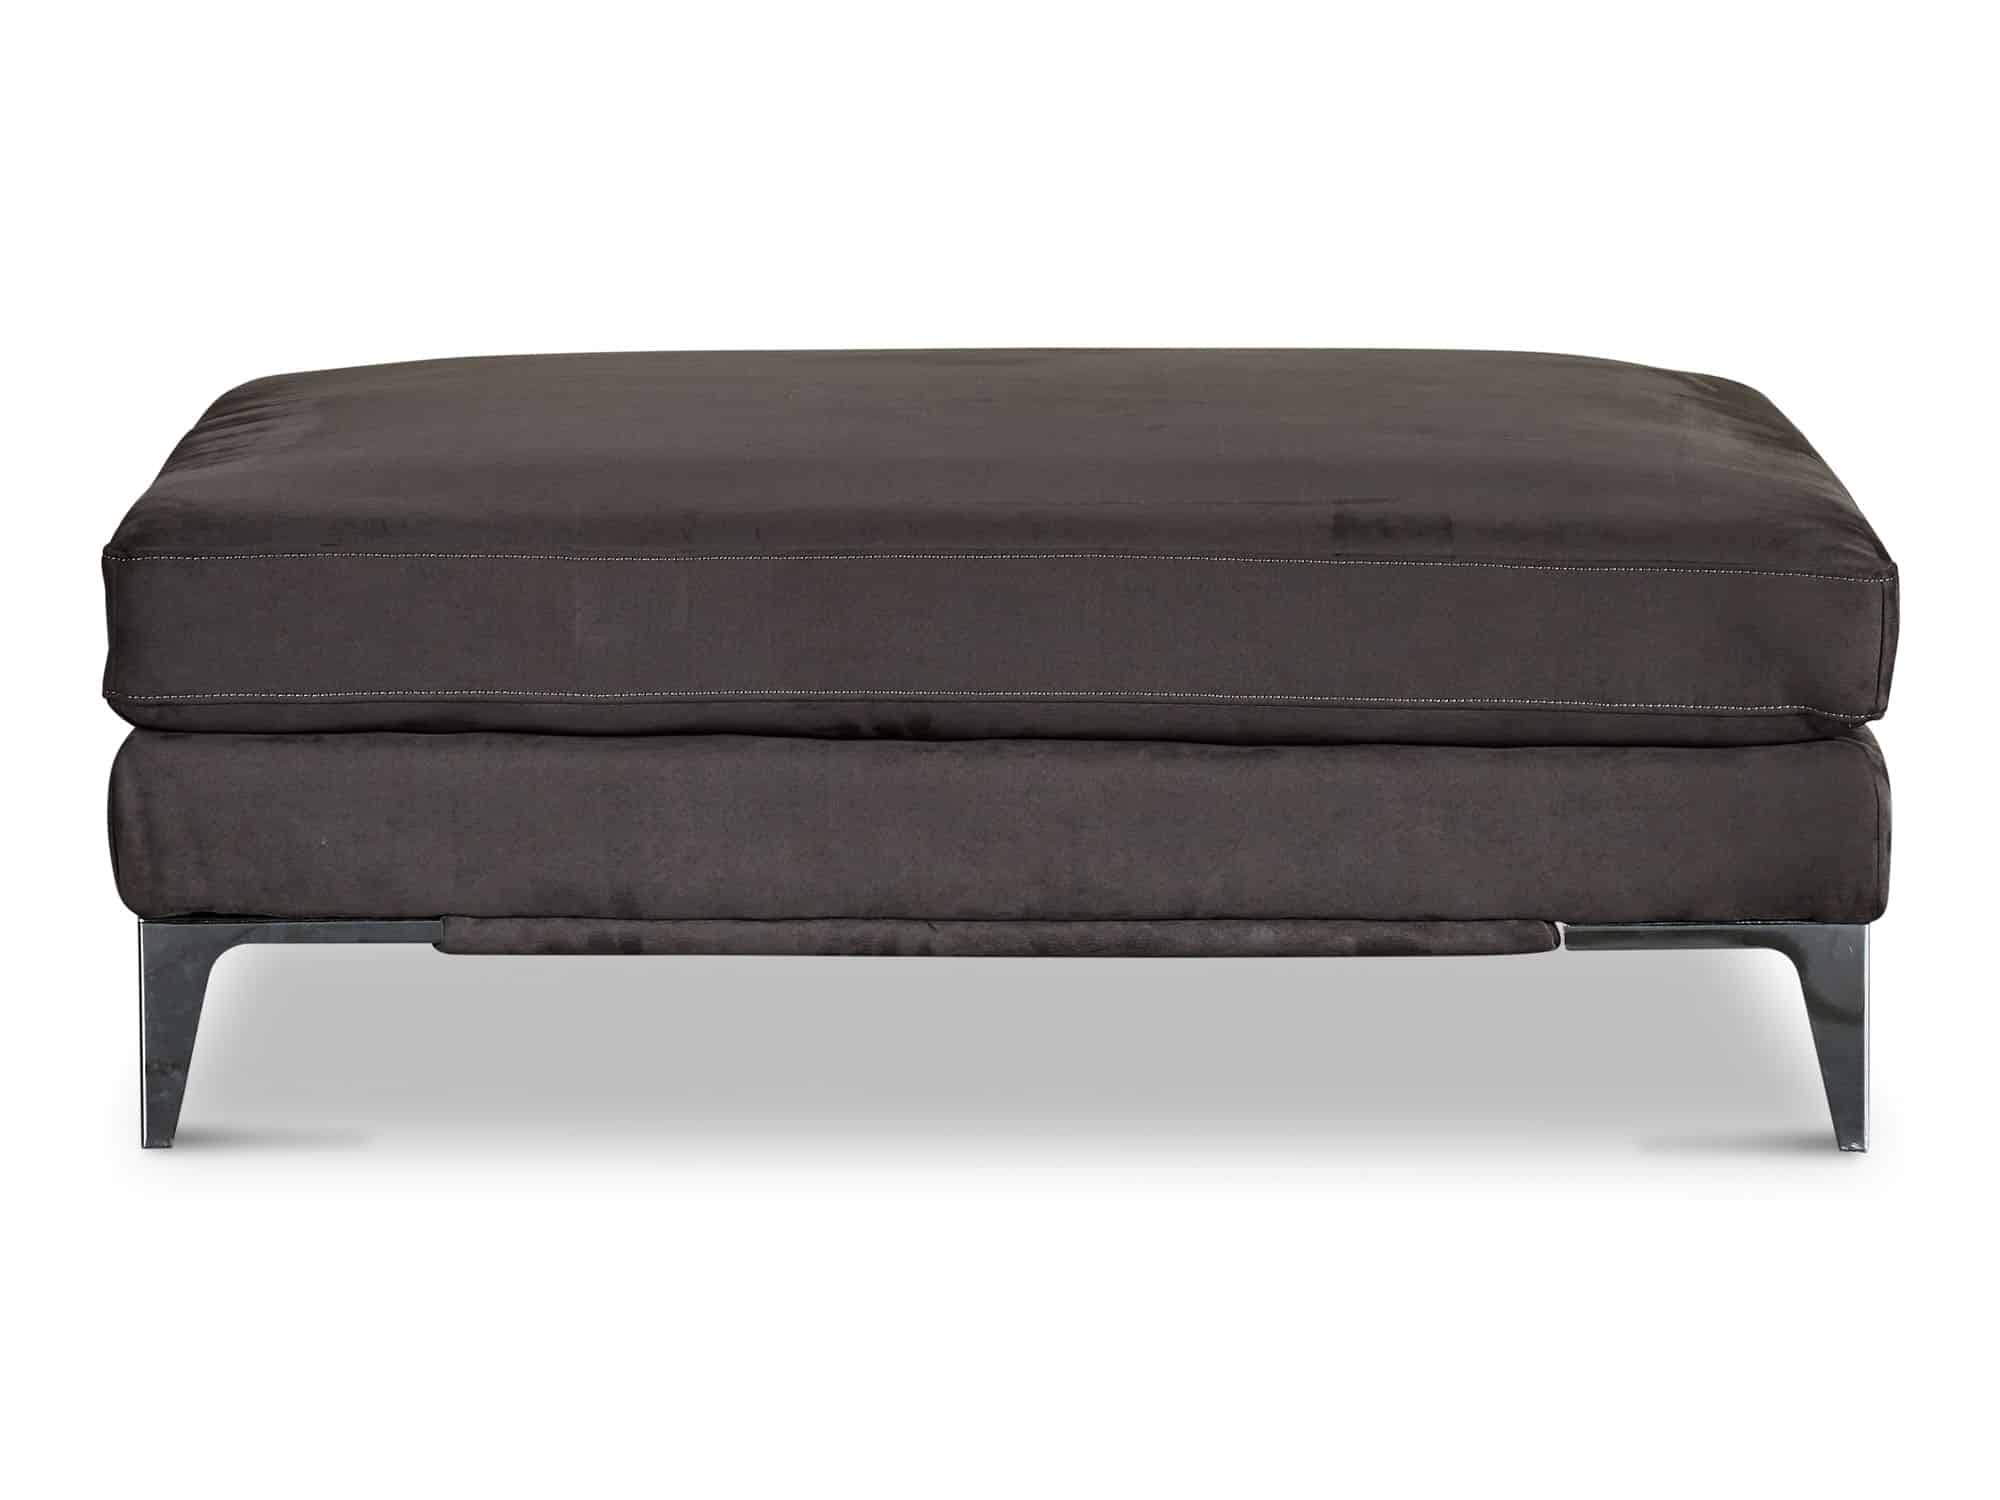 Lodge footstool